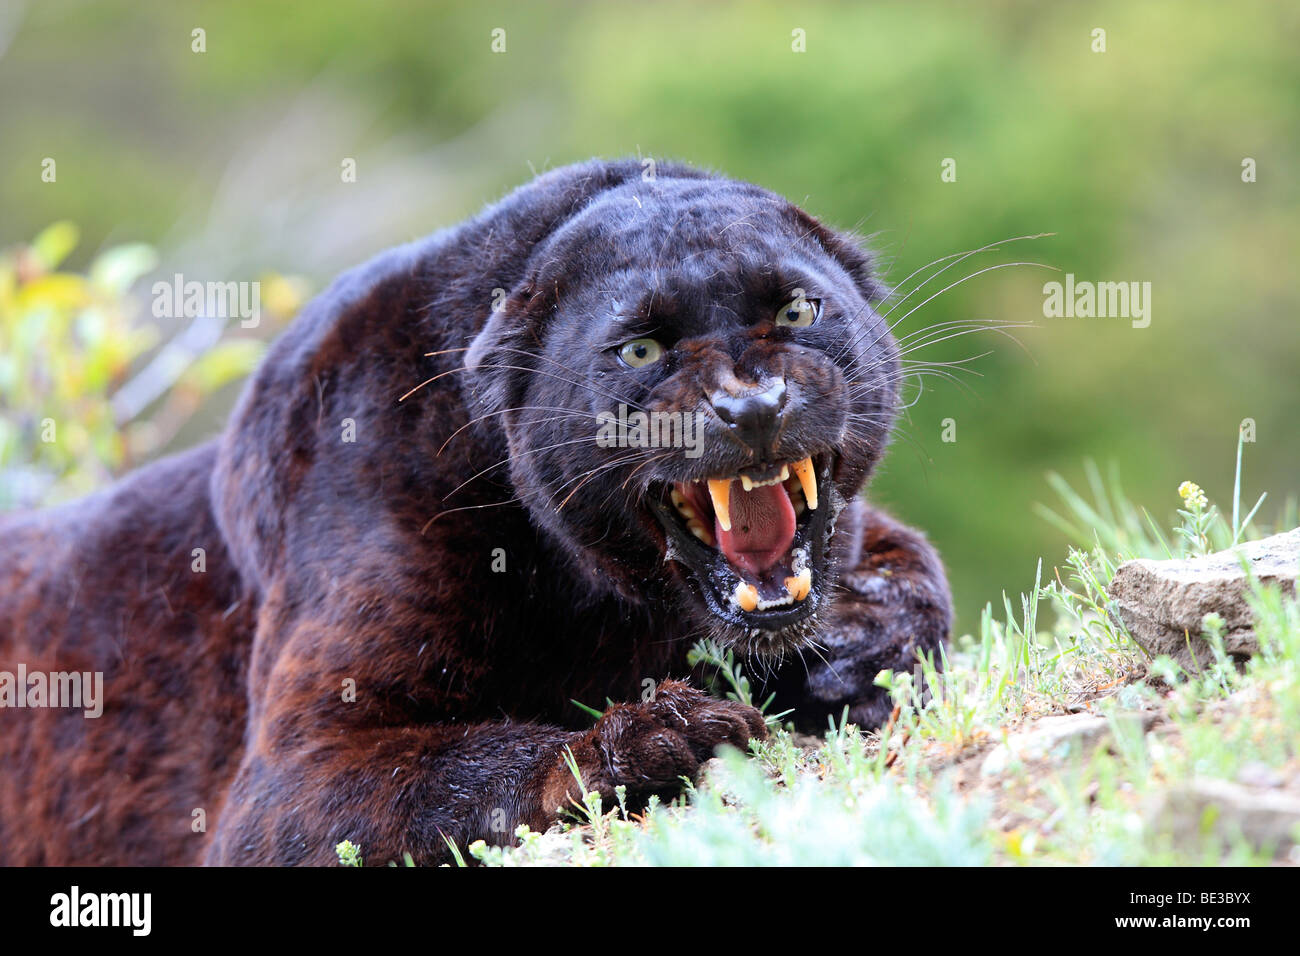 angry panther stockfotos angry panther bilder alamy. Black Bedroom Furniture Sets. Home Design Ideas